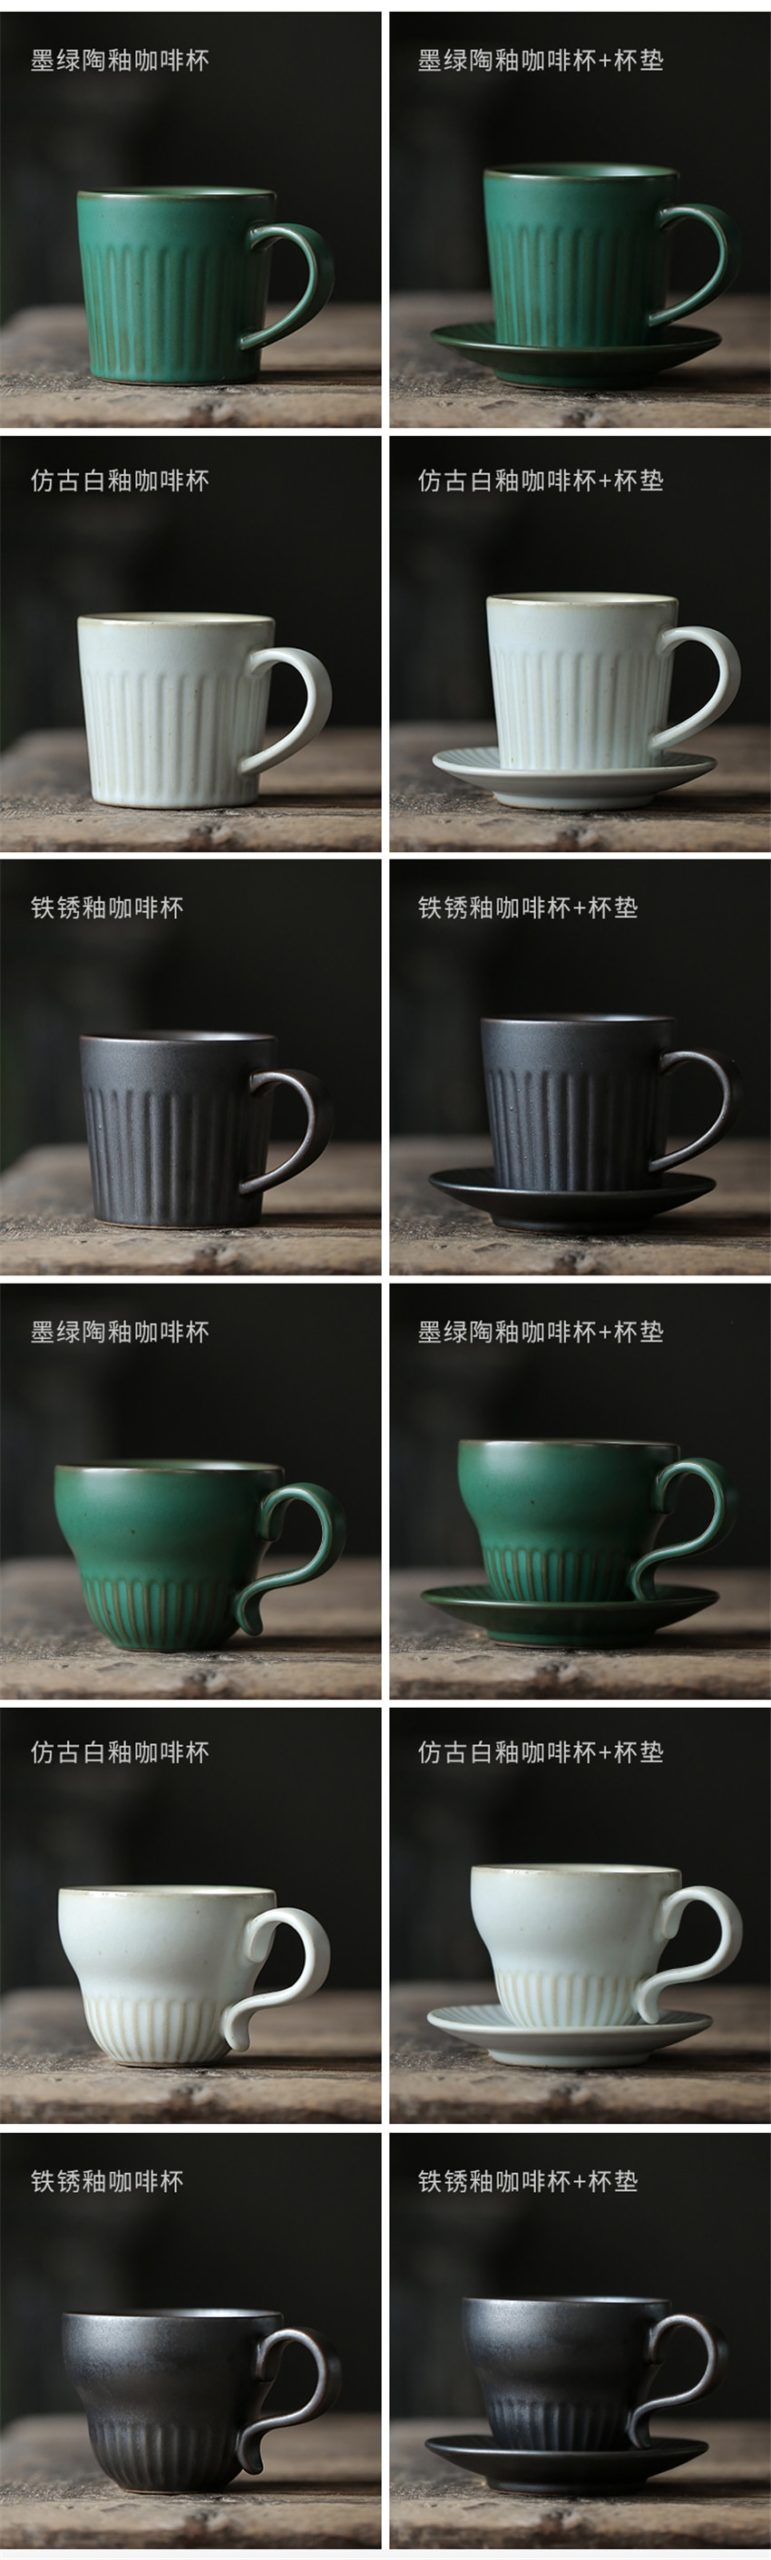 200ml Ceramic coffee cup  Japanese Style Teacup Water Cup Stoneware Ceramic Kungfu Teacup whit plate Cuisine Drinkware